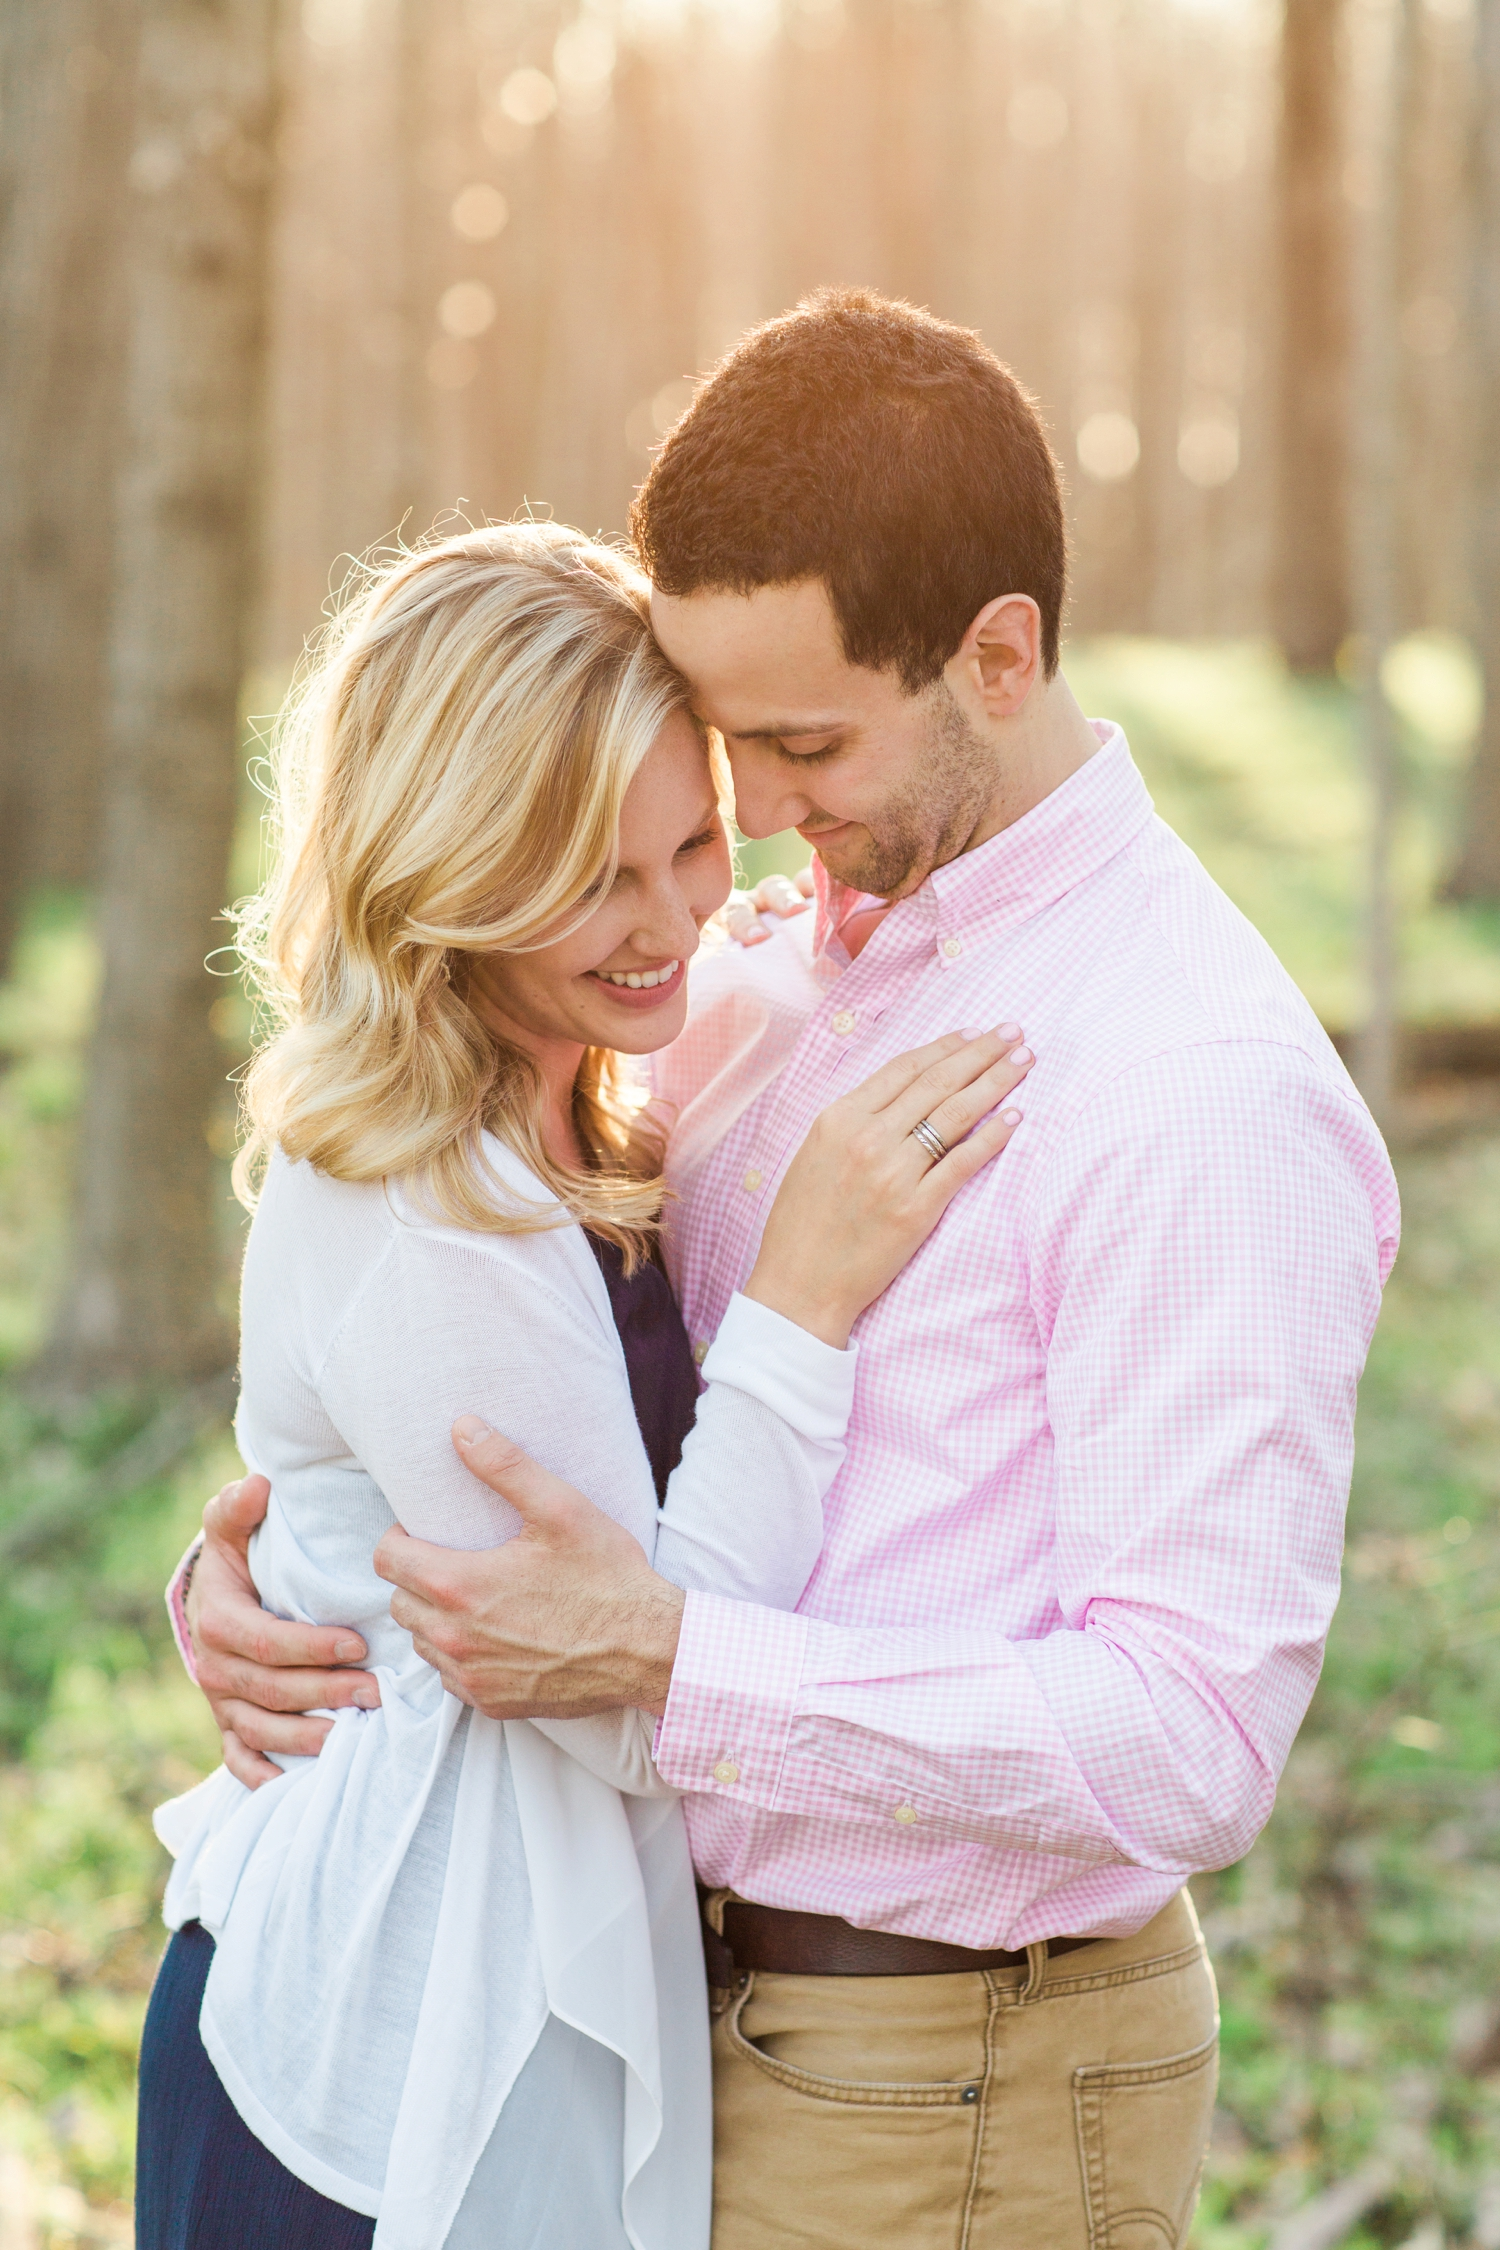 indianapolis_wedding_photographer_golden_hour_engagement_chloe_luka_photography_6116.jpg